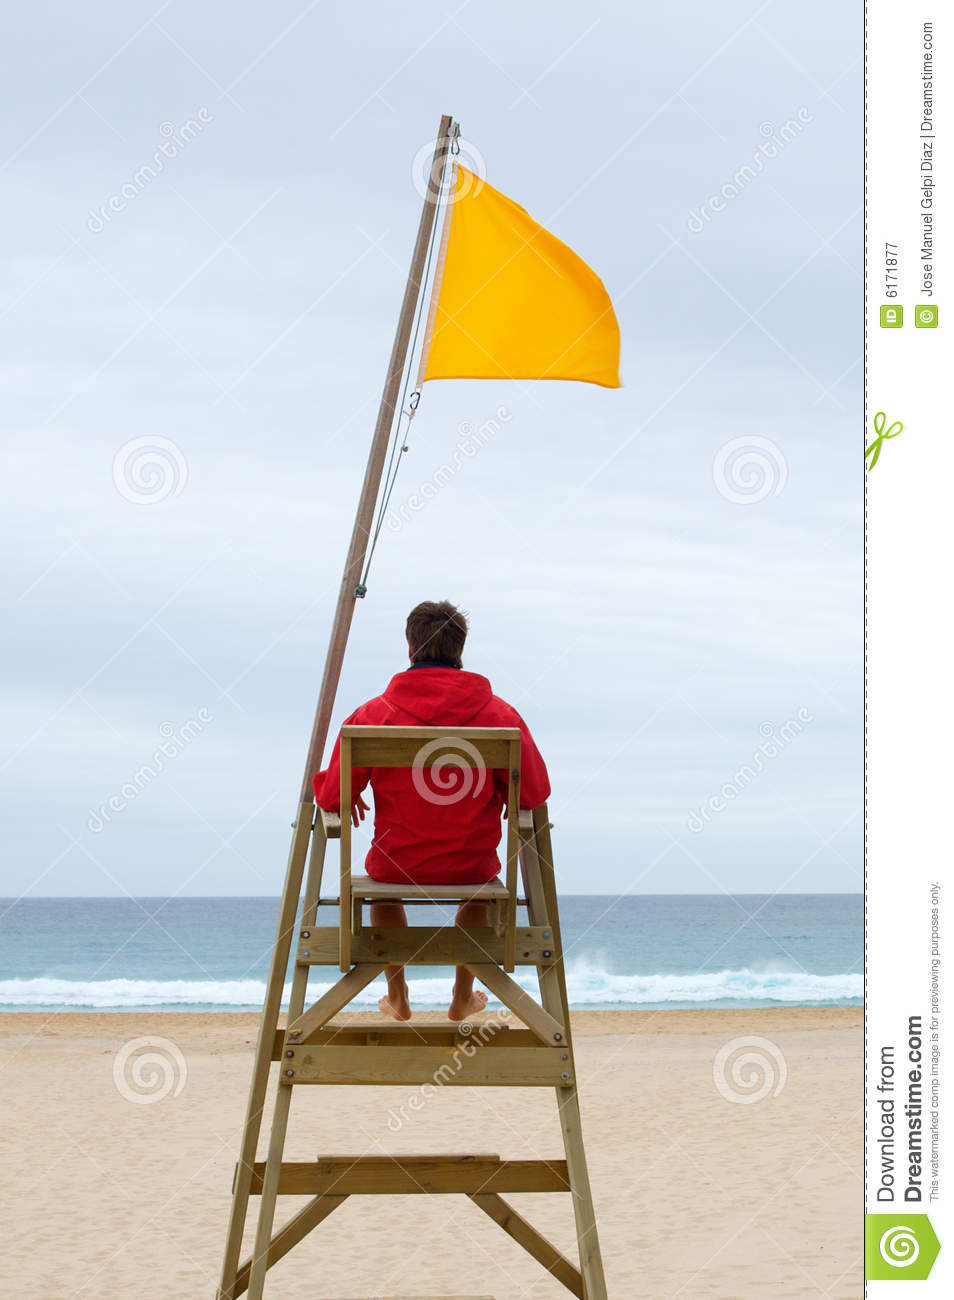 Lifeguard Sitting In His Chair Royalty Free Stock